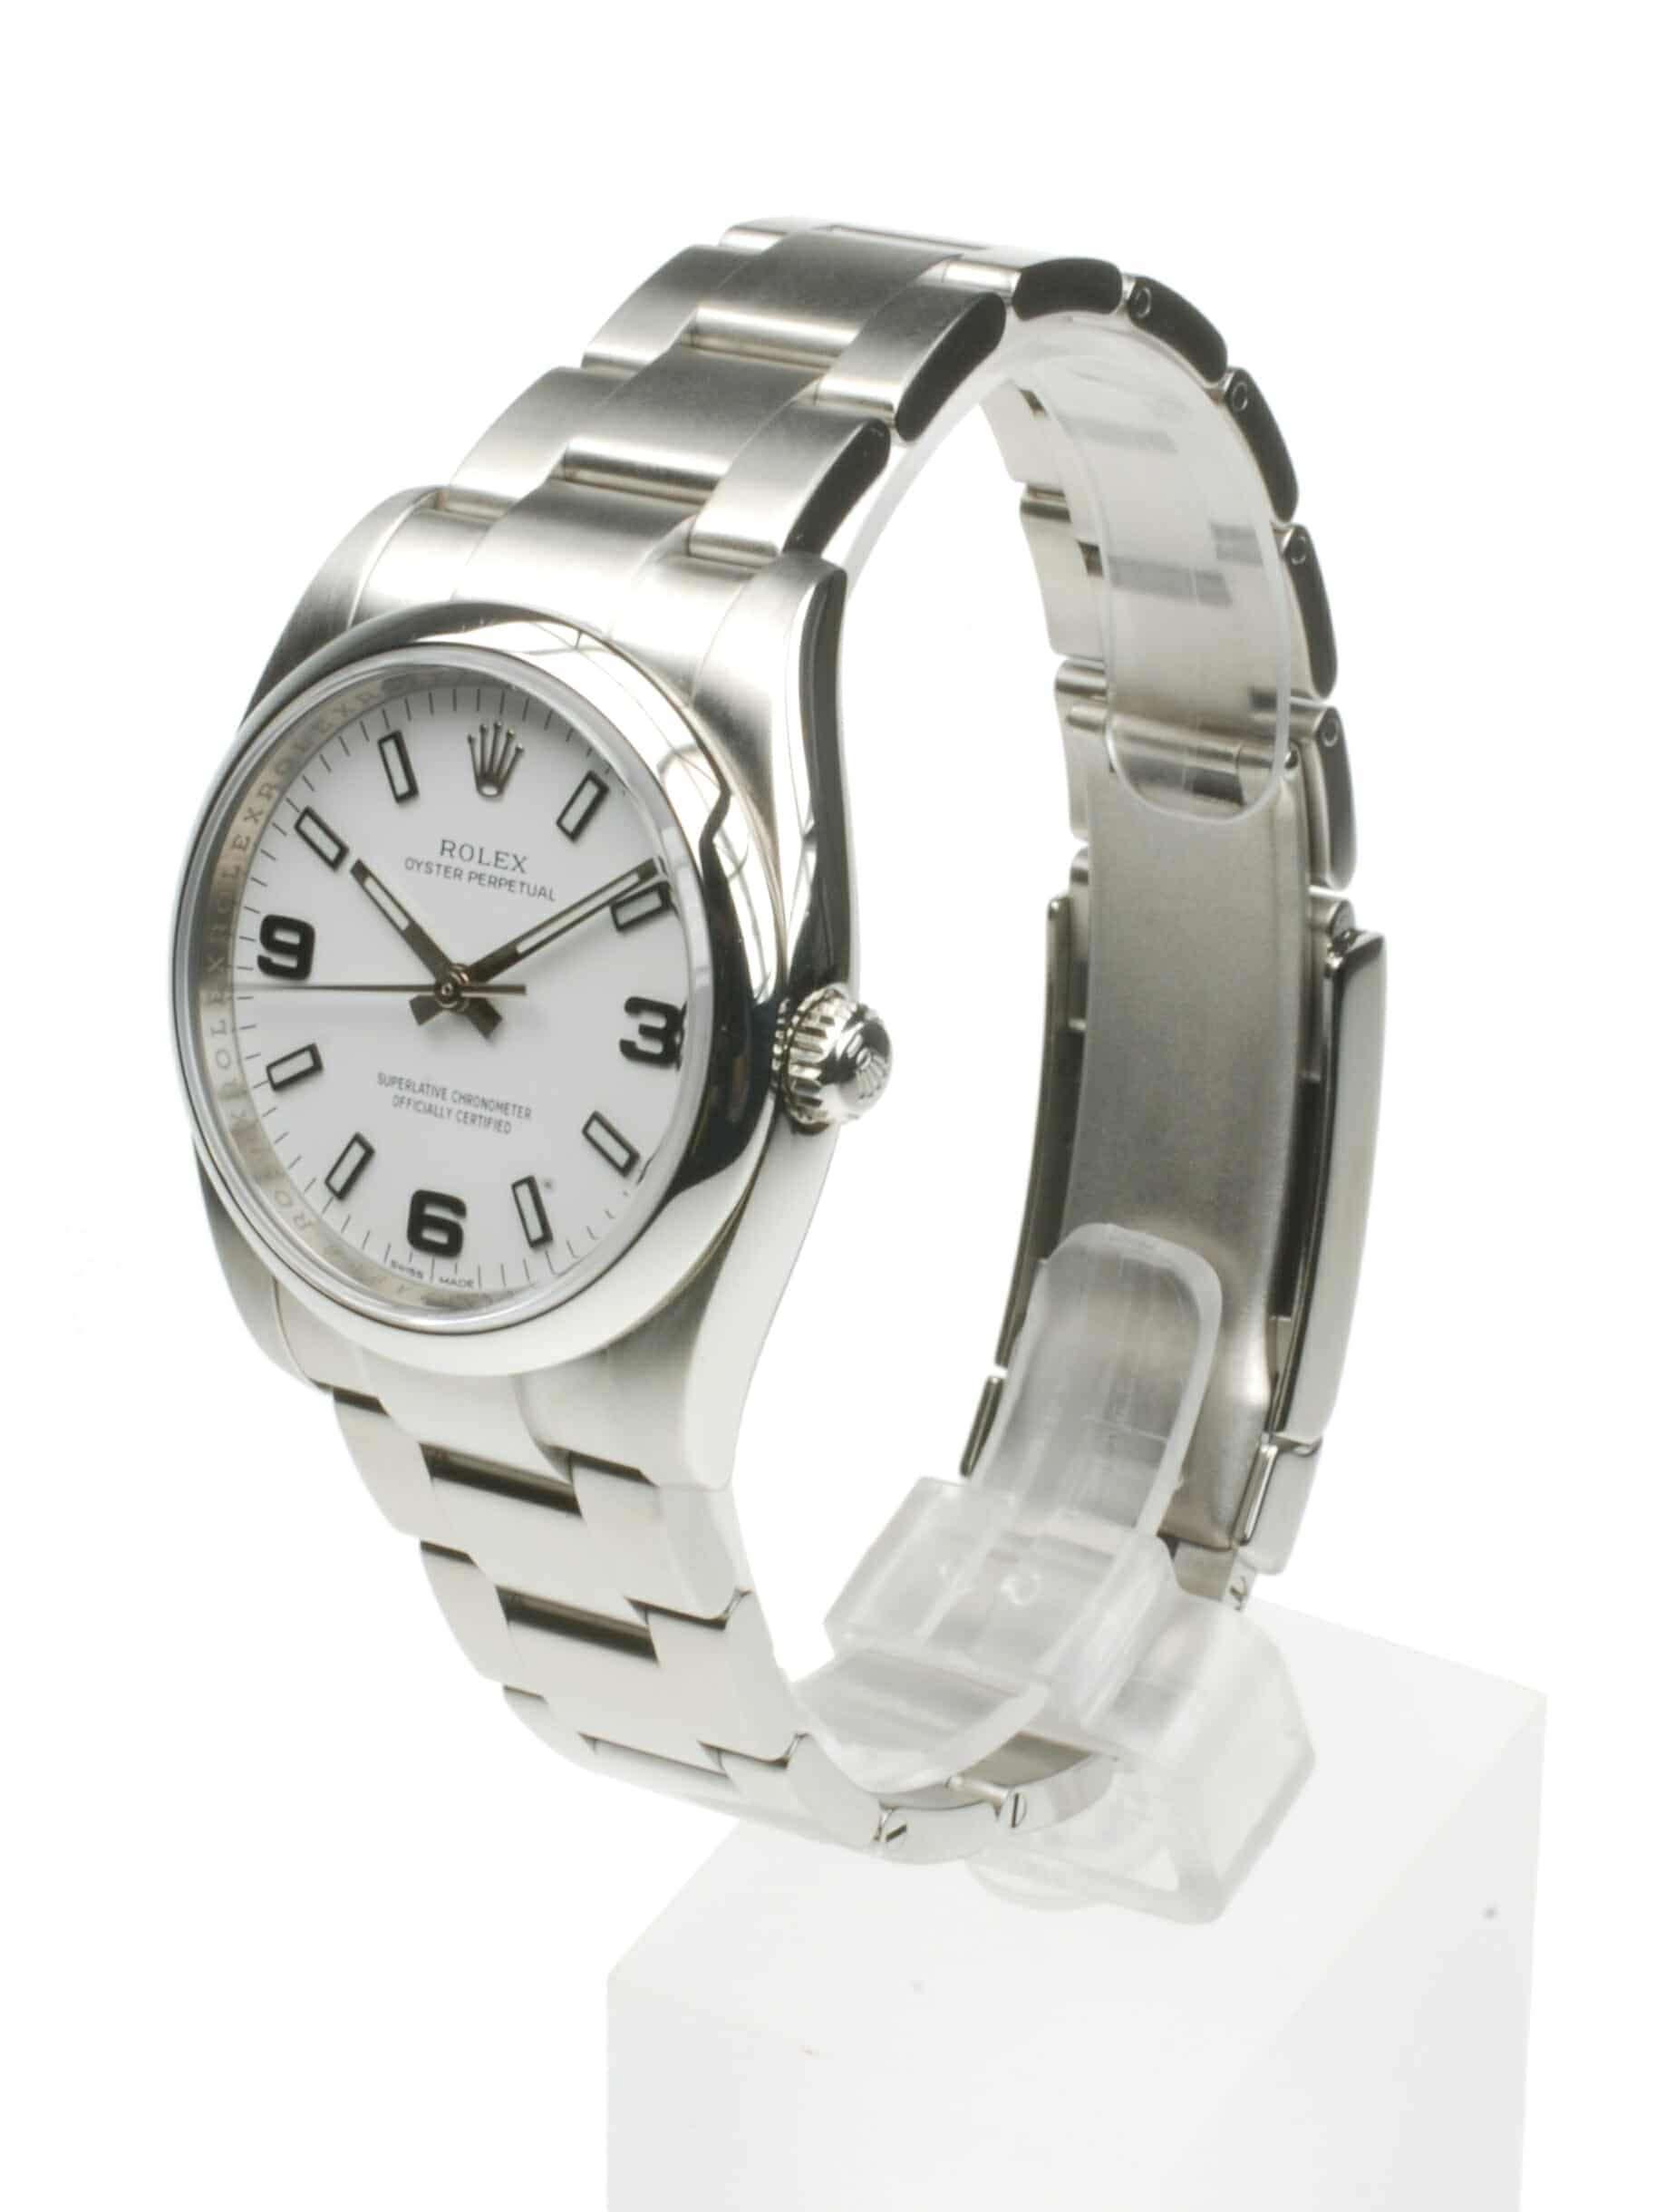 Rolex Oyster Perpetual 114200 From 2005 Pre-Owned Watch